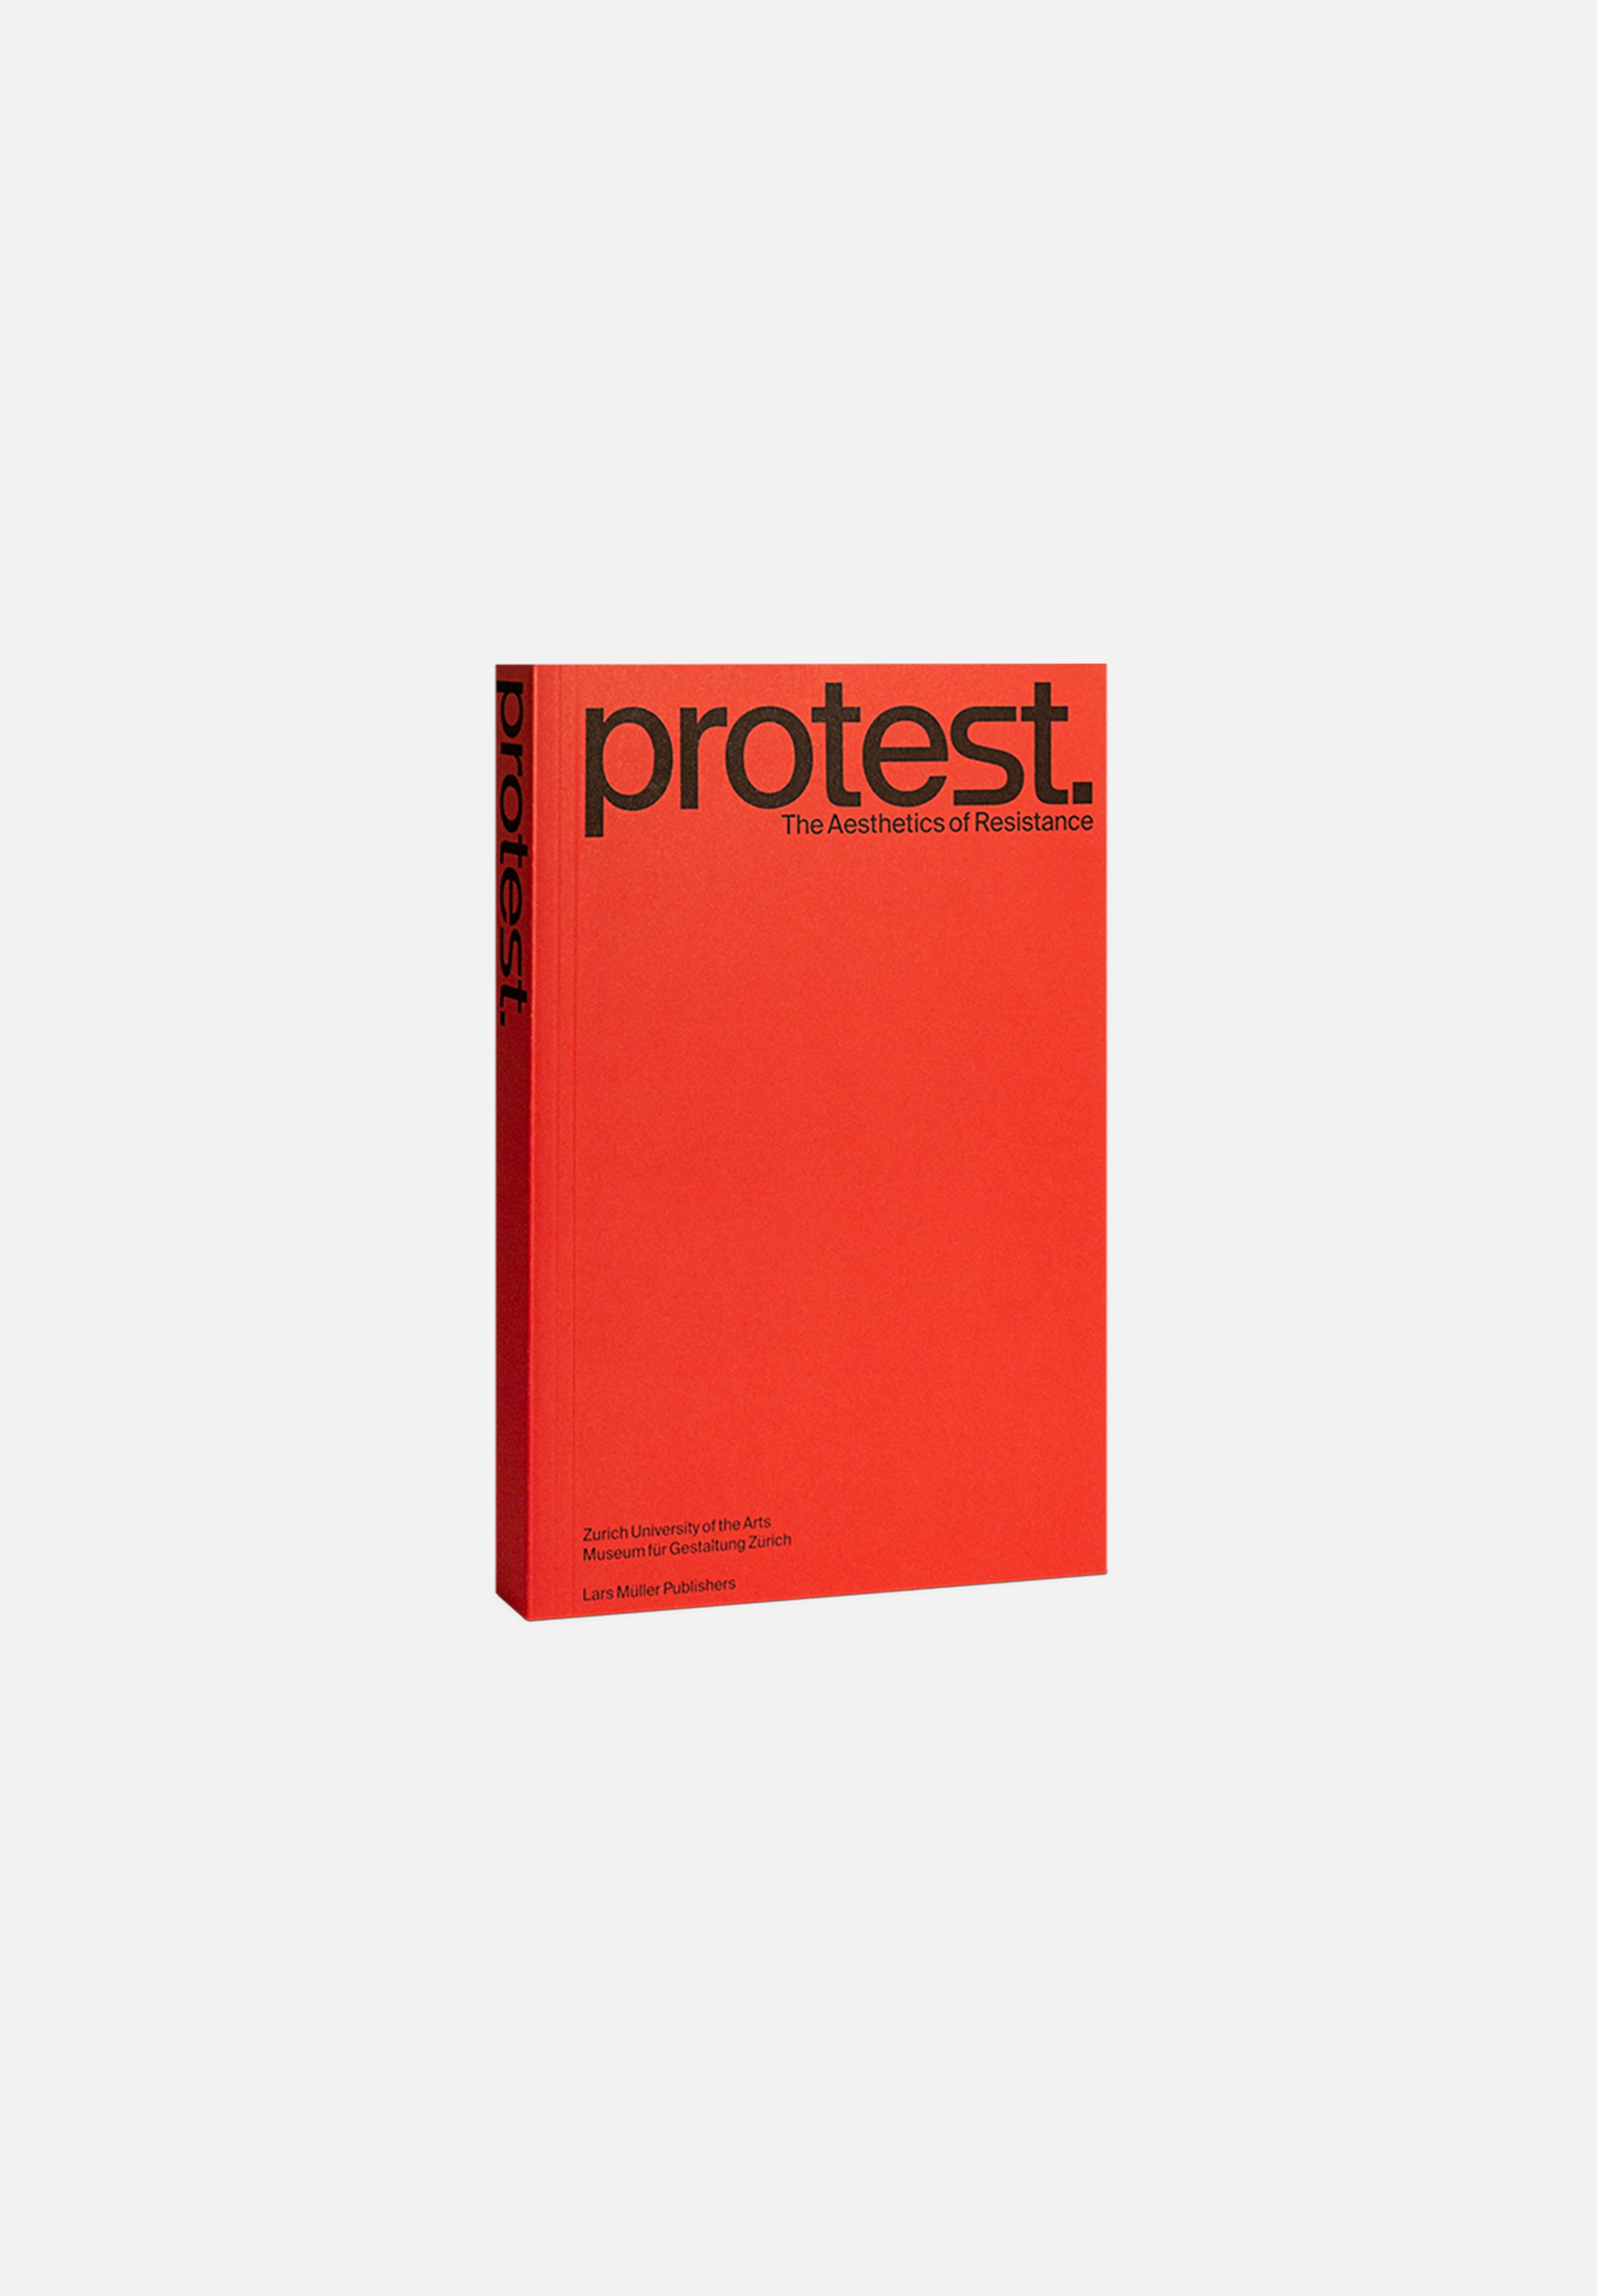 Protest. — The Aesthetics of Resistance